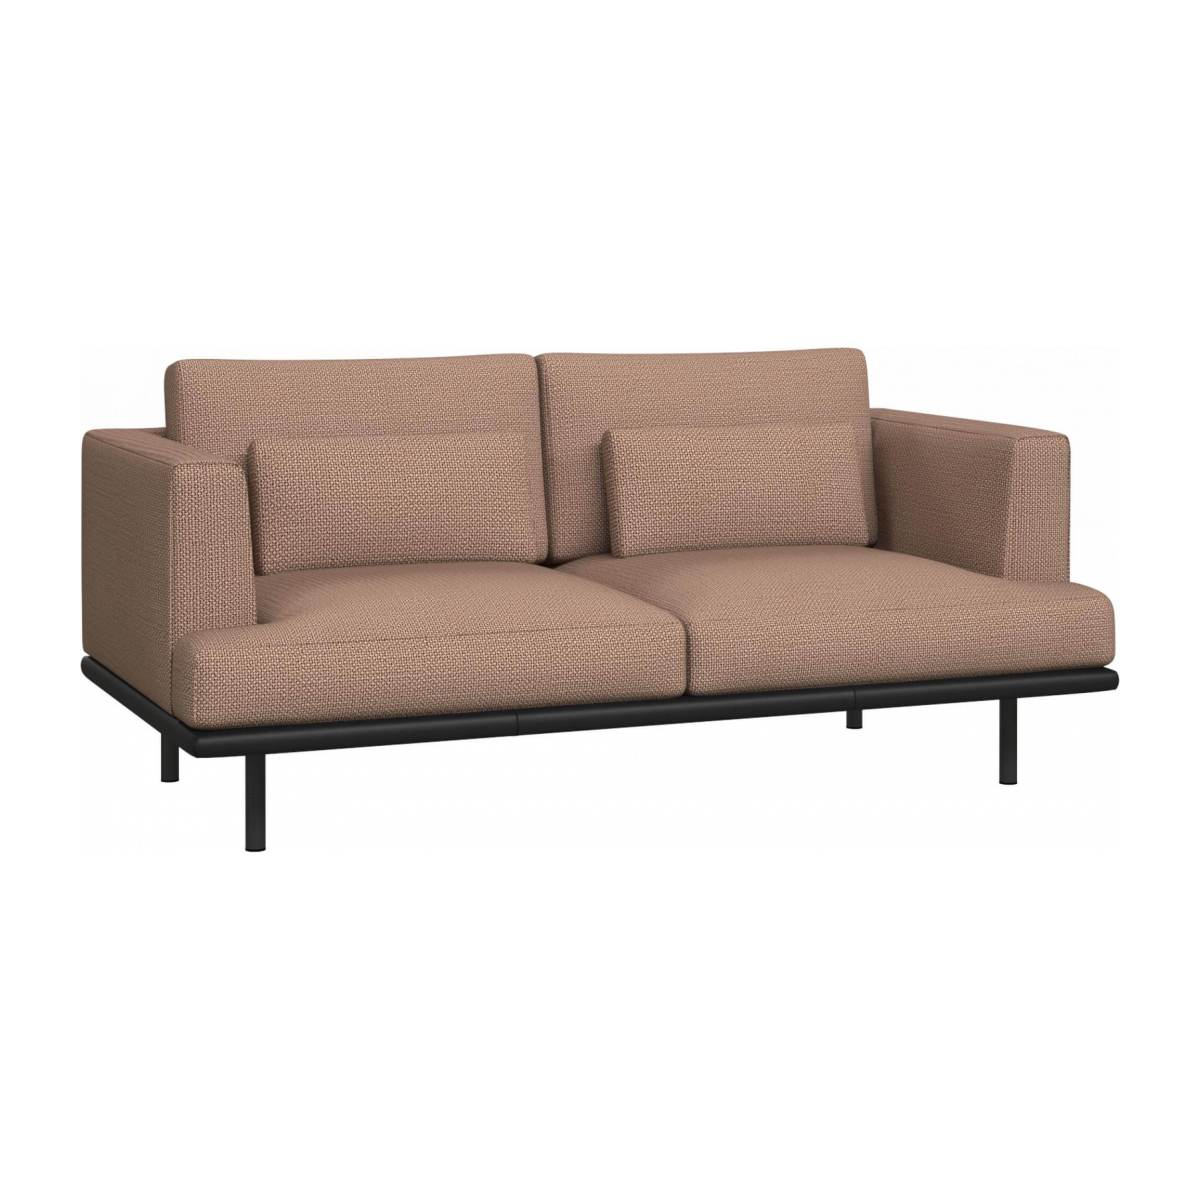 2 seater sofa in Fasoli fabric, jatoba brown with base in black leather n°3